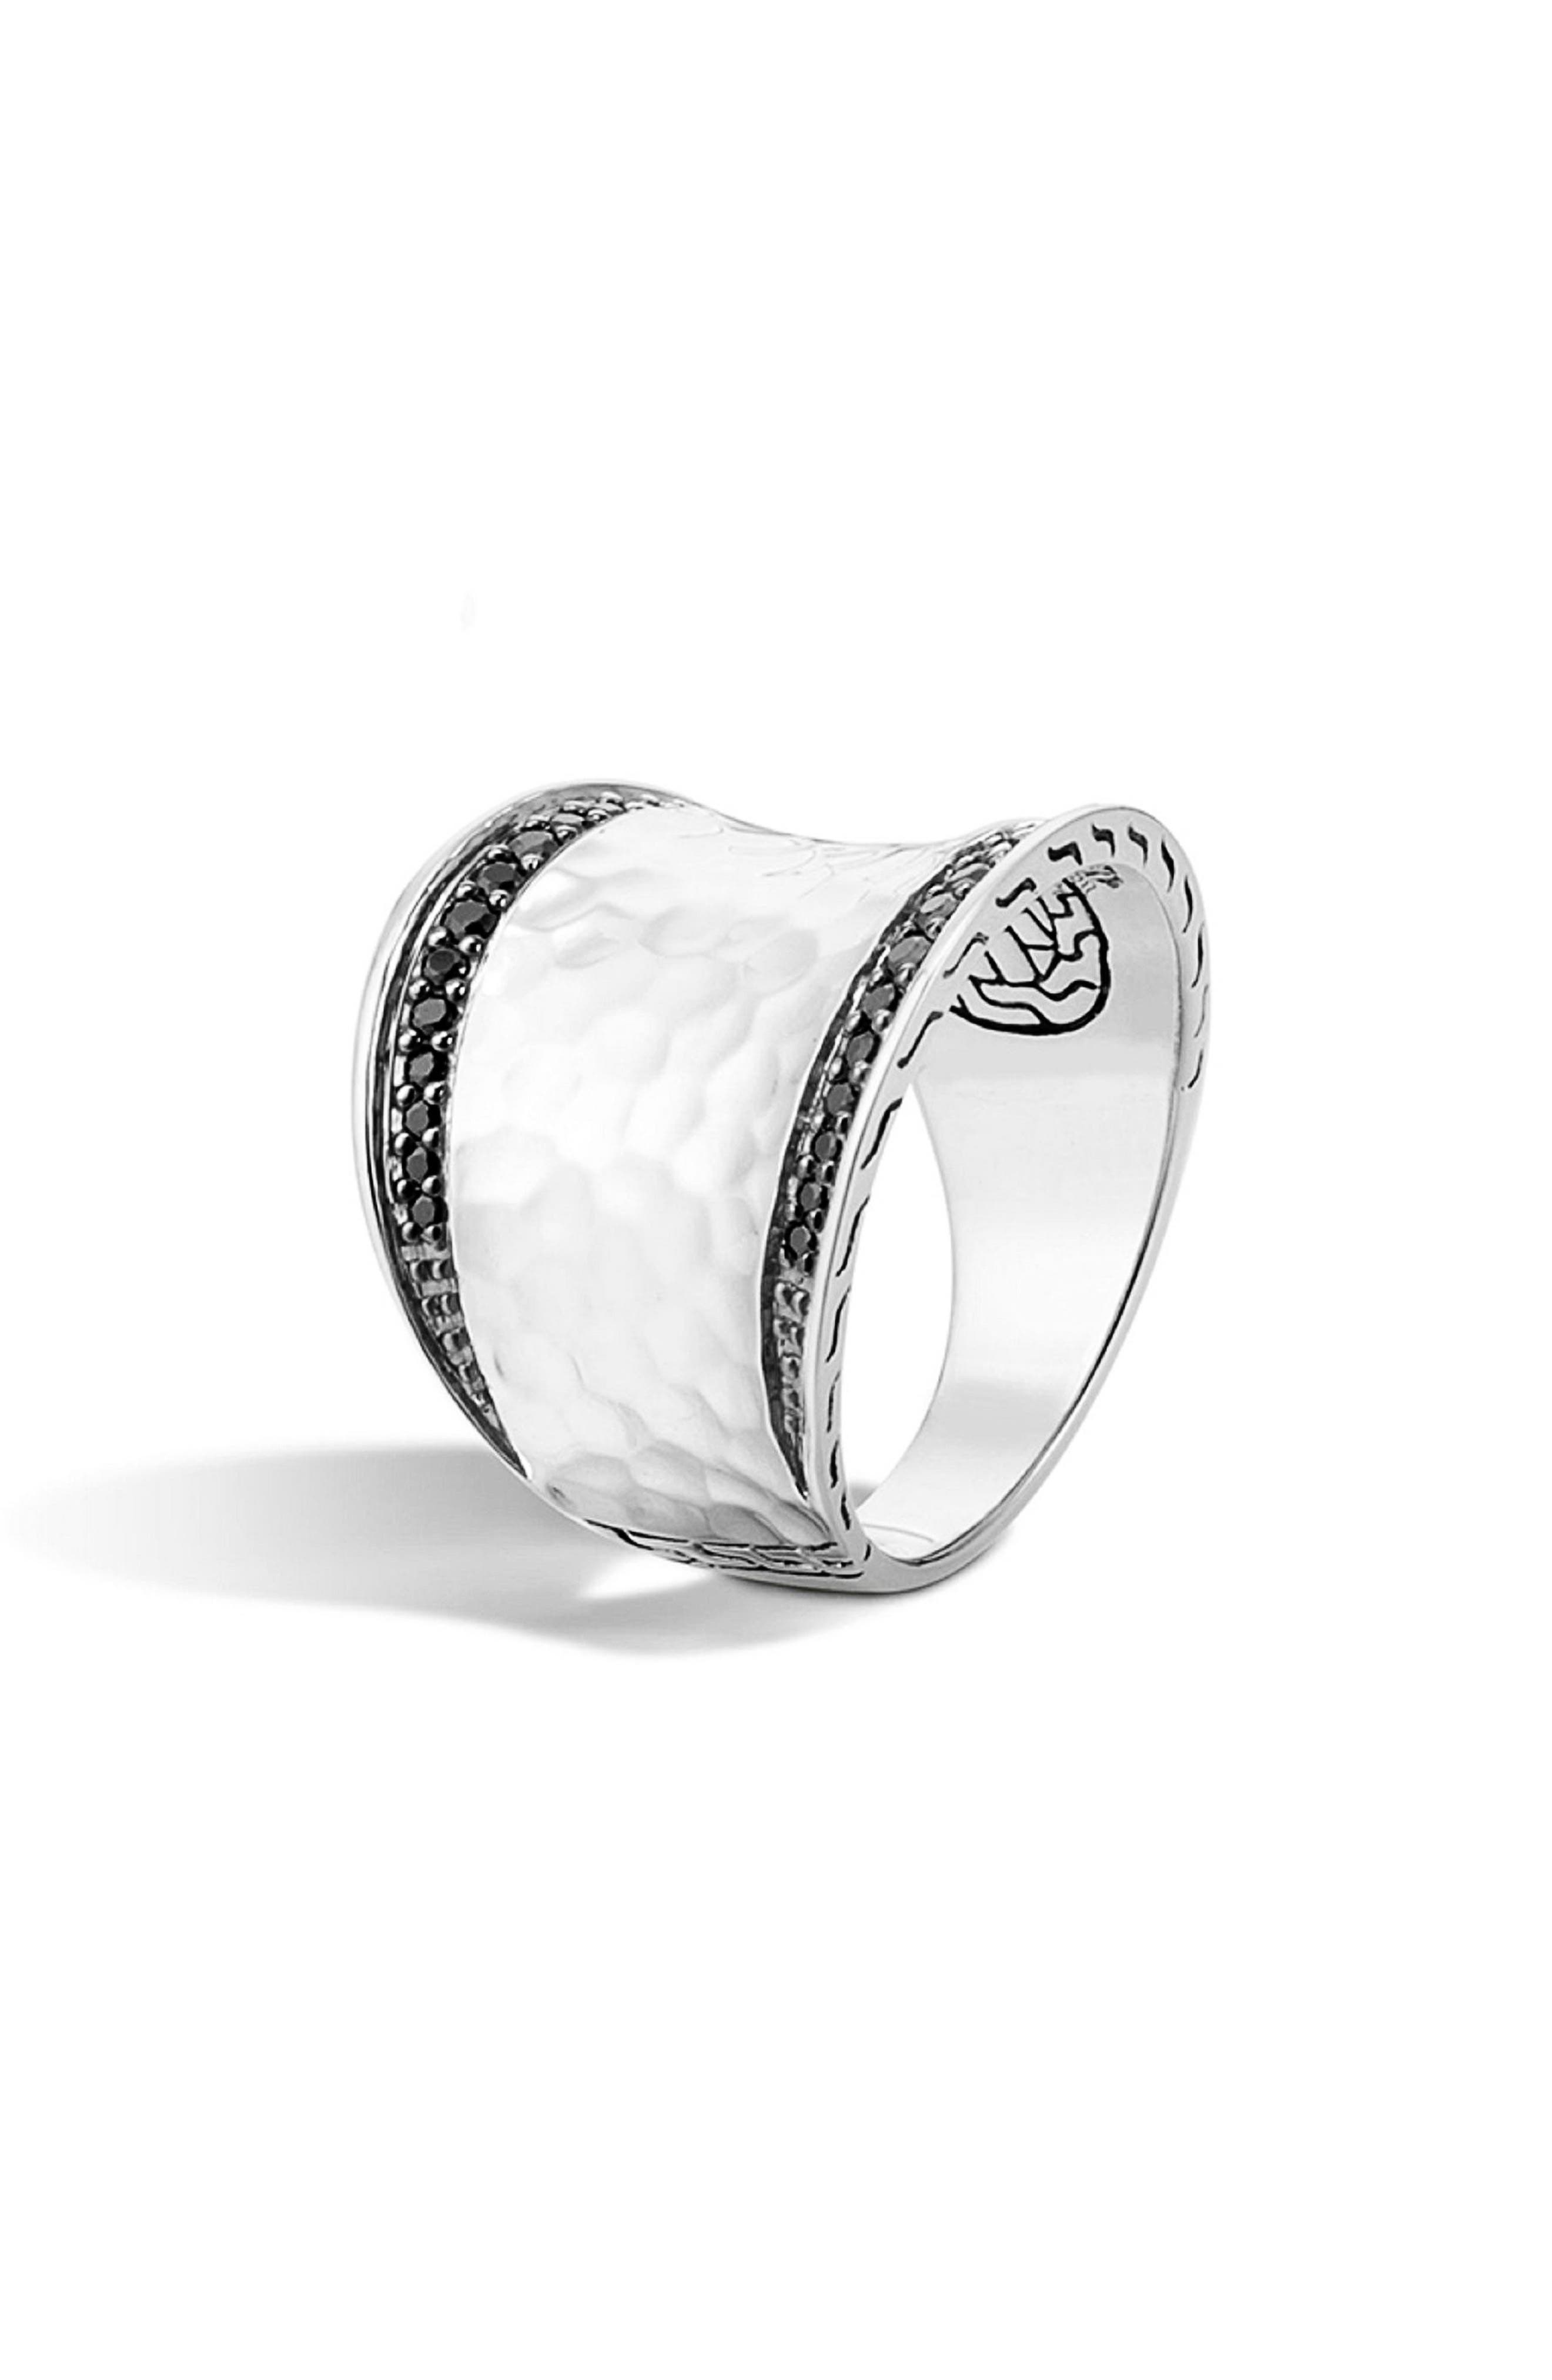 'Classic Chain' Small Saddle Ring,                             Main thumbnail 1, color,                             SILVER/ BLACK SAPPHIRE